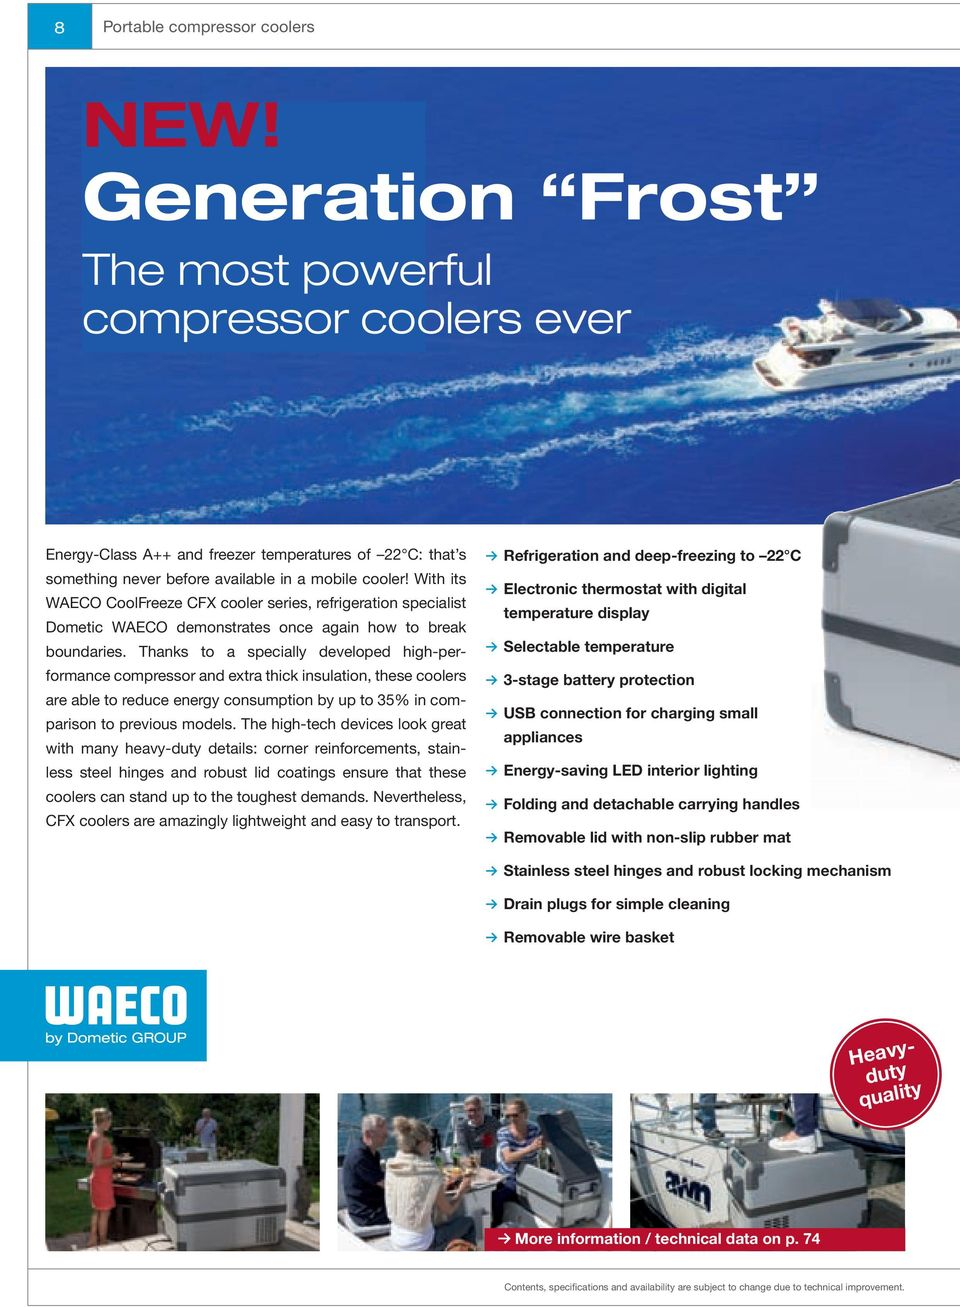 With its WAECO CoolFreeze CFX cooler series, refrigeration specialist Dometic WAECO demonstrates once again how to break boundaries.